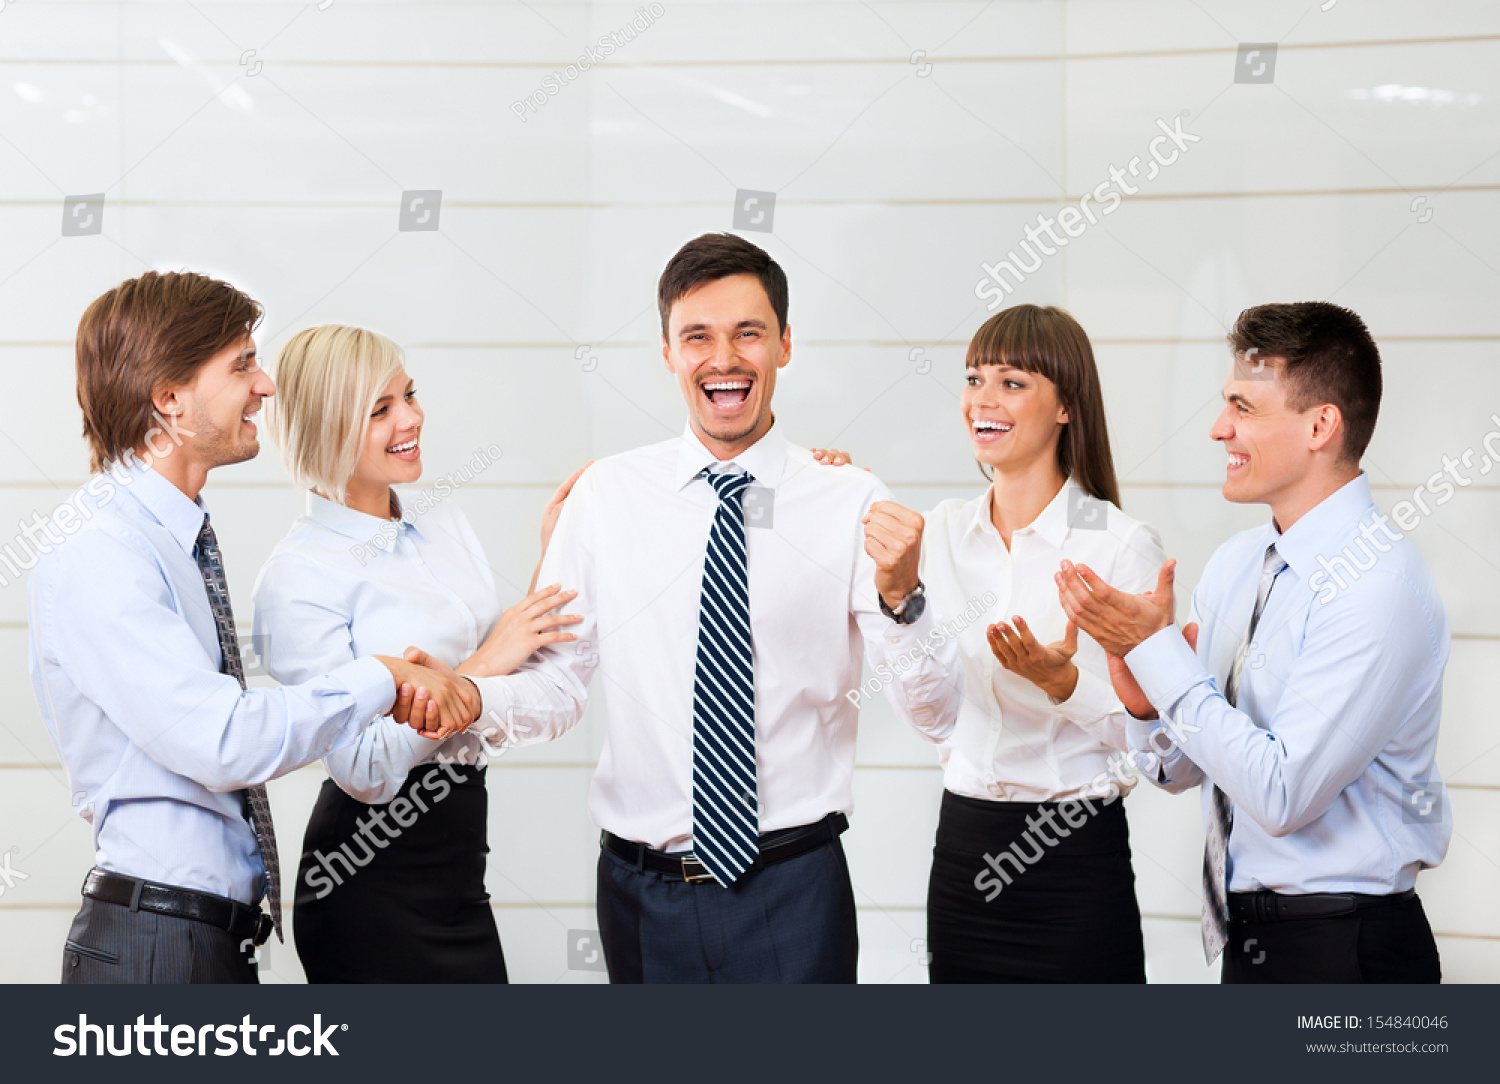 business people applauding congratulating colleague boss stock business people applauding congratulating colleague boss team leader success businesspeople group smile